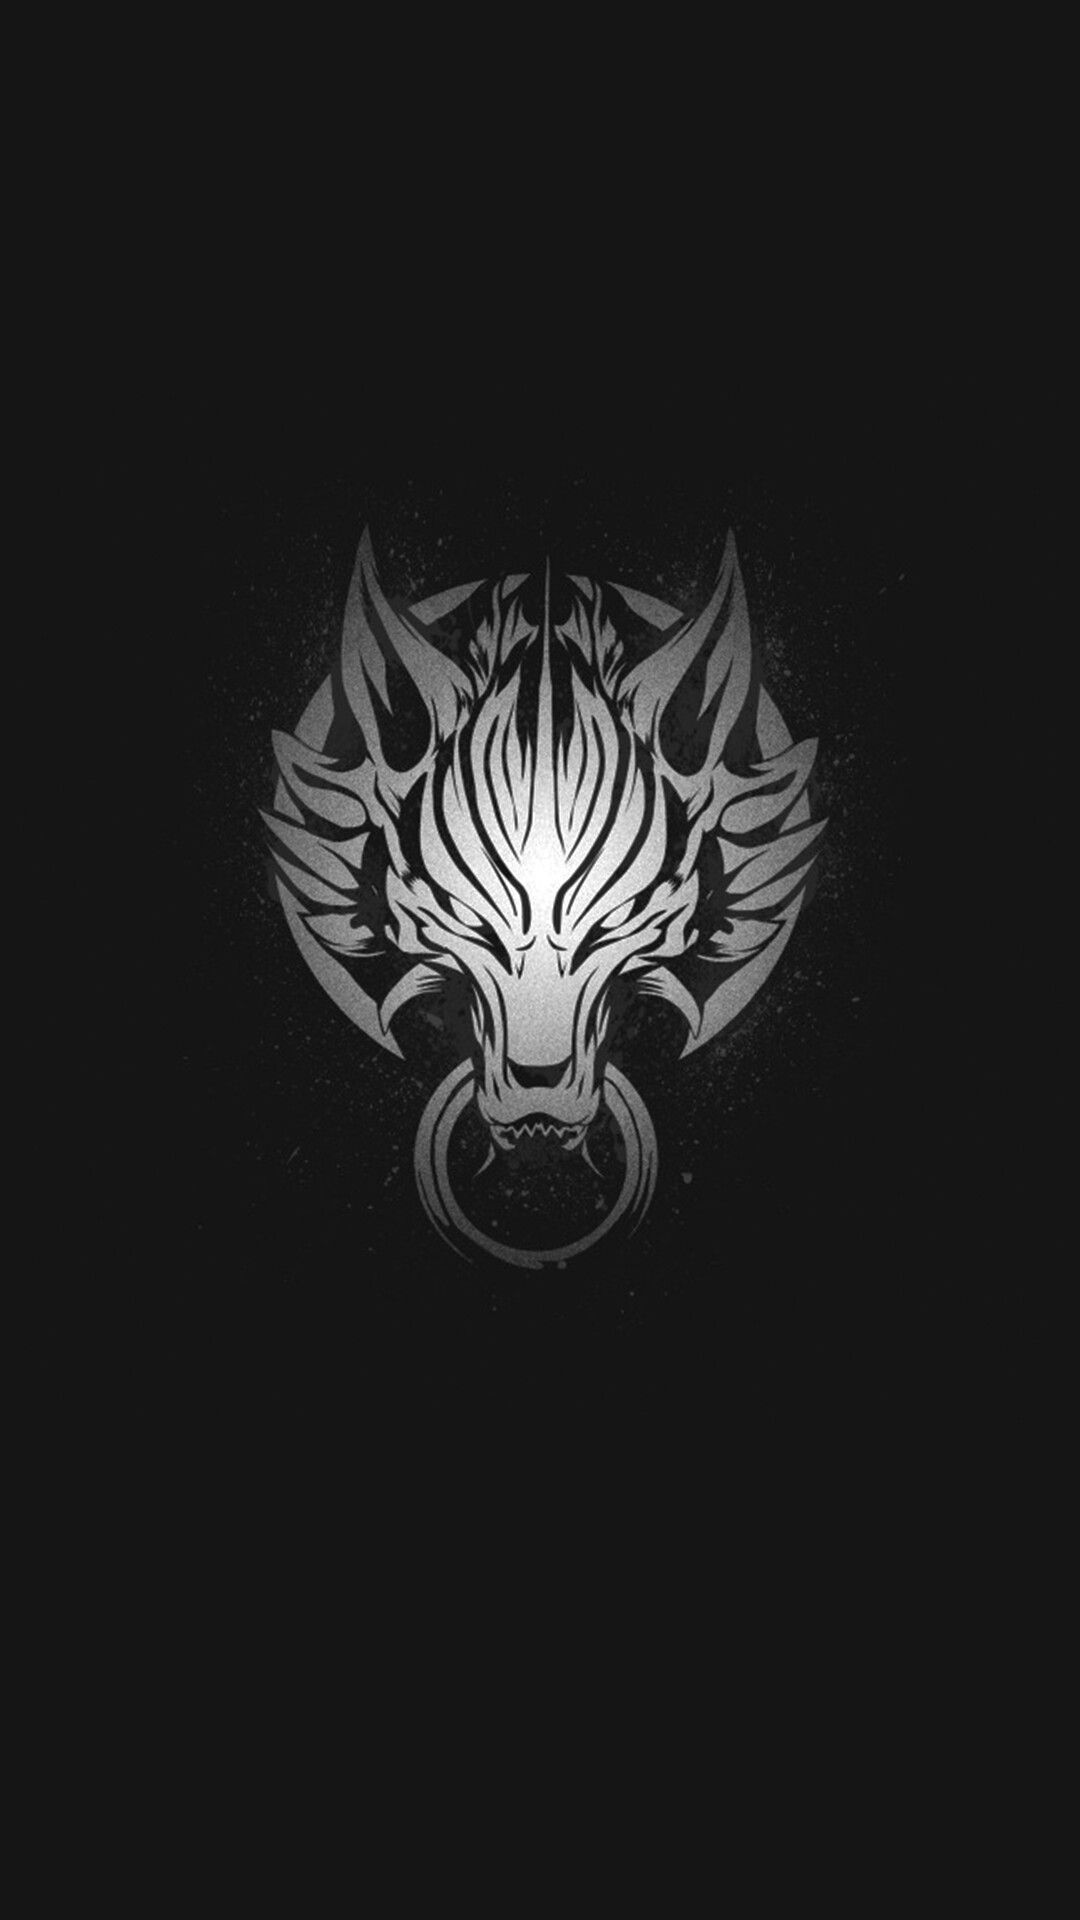 Pin By Iyan Sofyan On Super Heroes Pictures Wolf Wallpaper